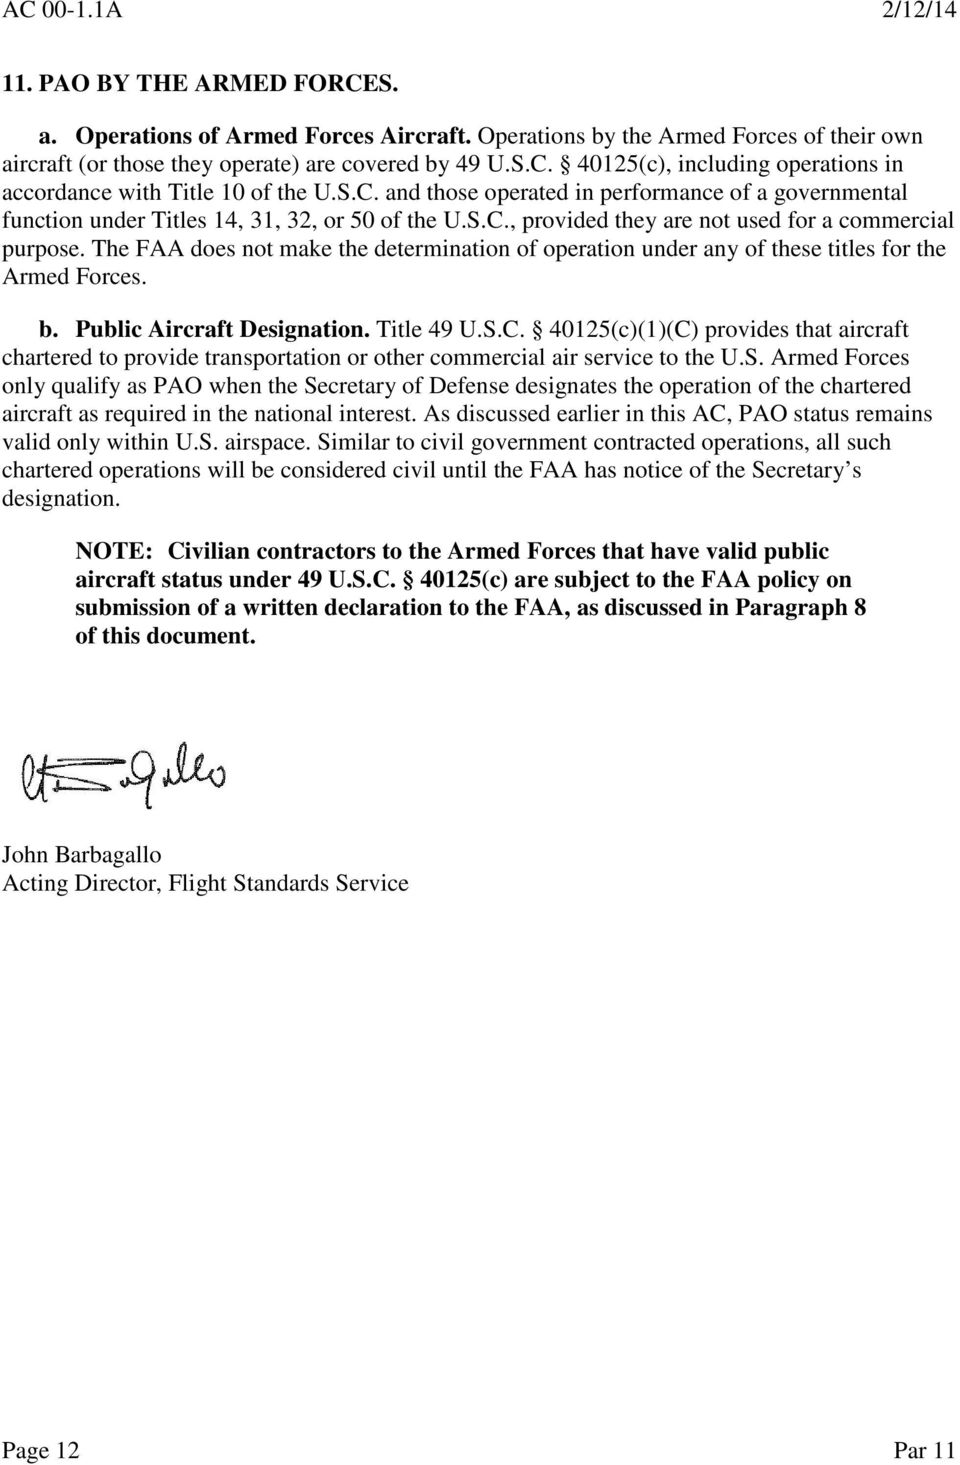 The FAA does not make the determination of operation under any of these titles for the Armed Forces. b. Public Aircraft Designation. Title 49 U.S.C.